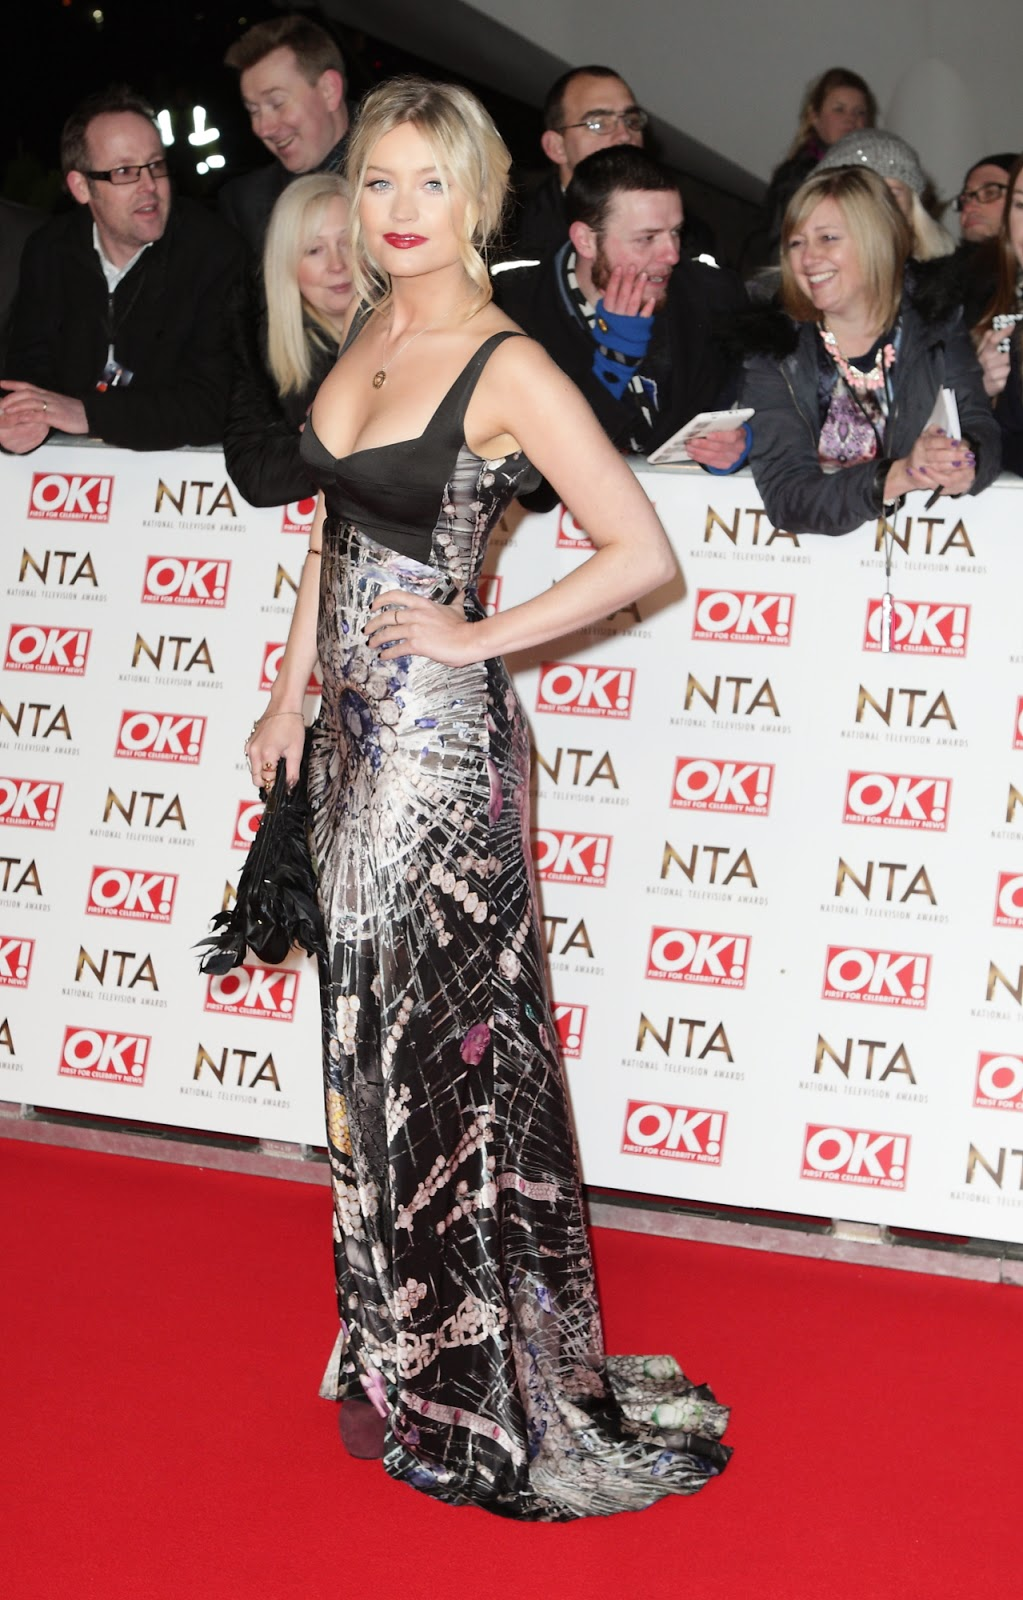 TV presenter, model: Laura Whitmore - National Television Awards in London